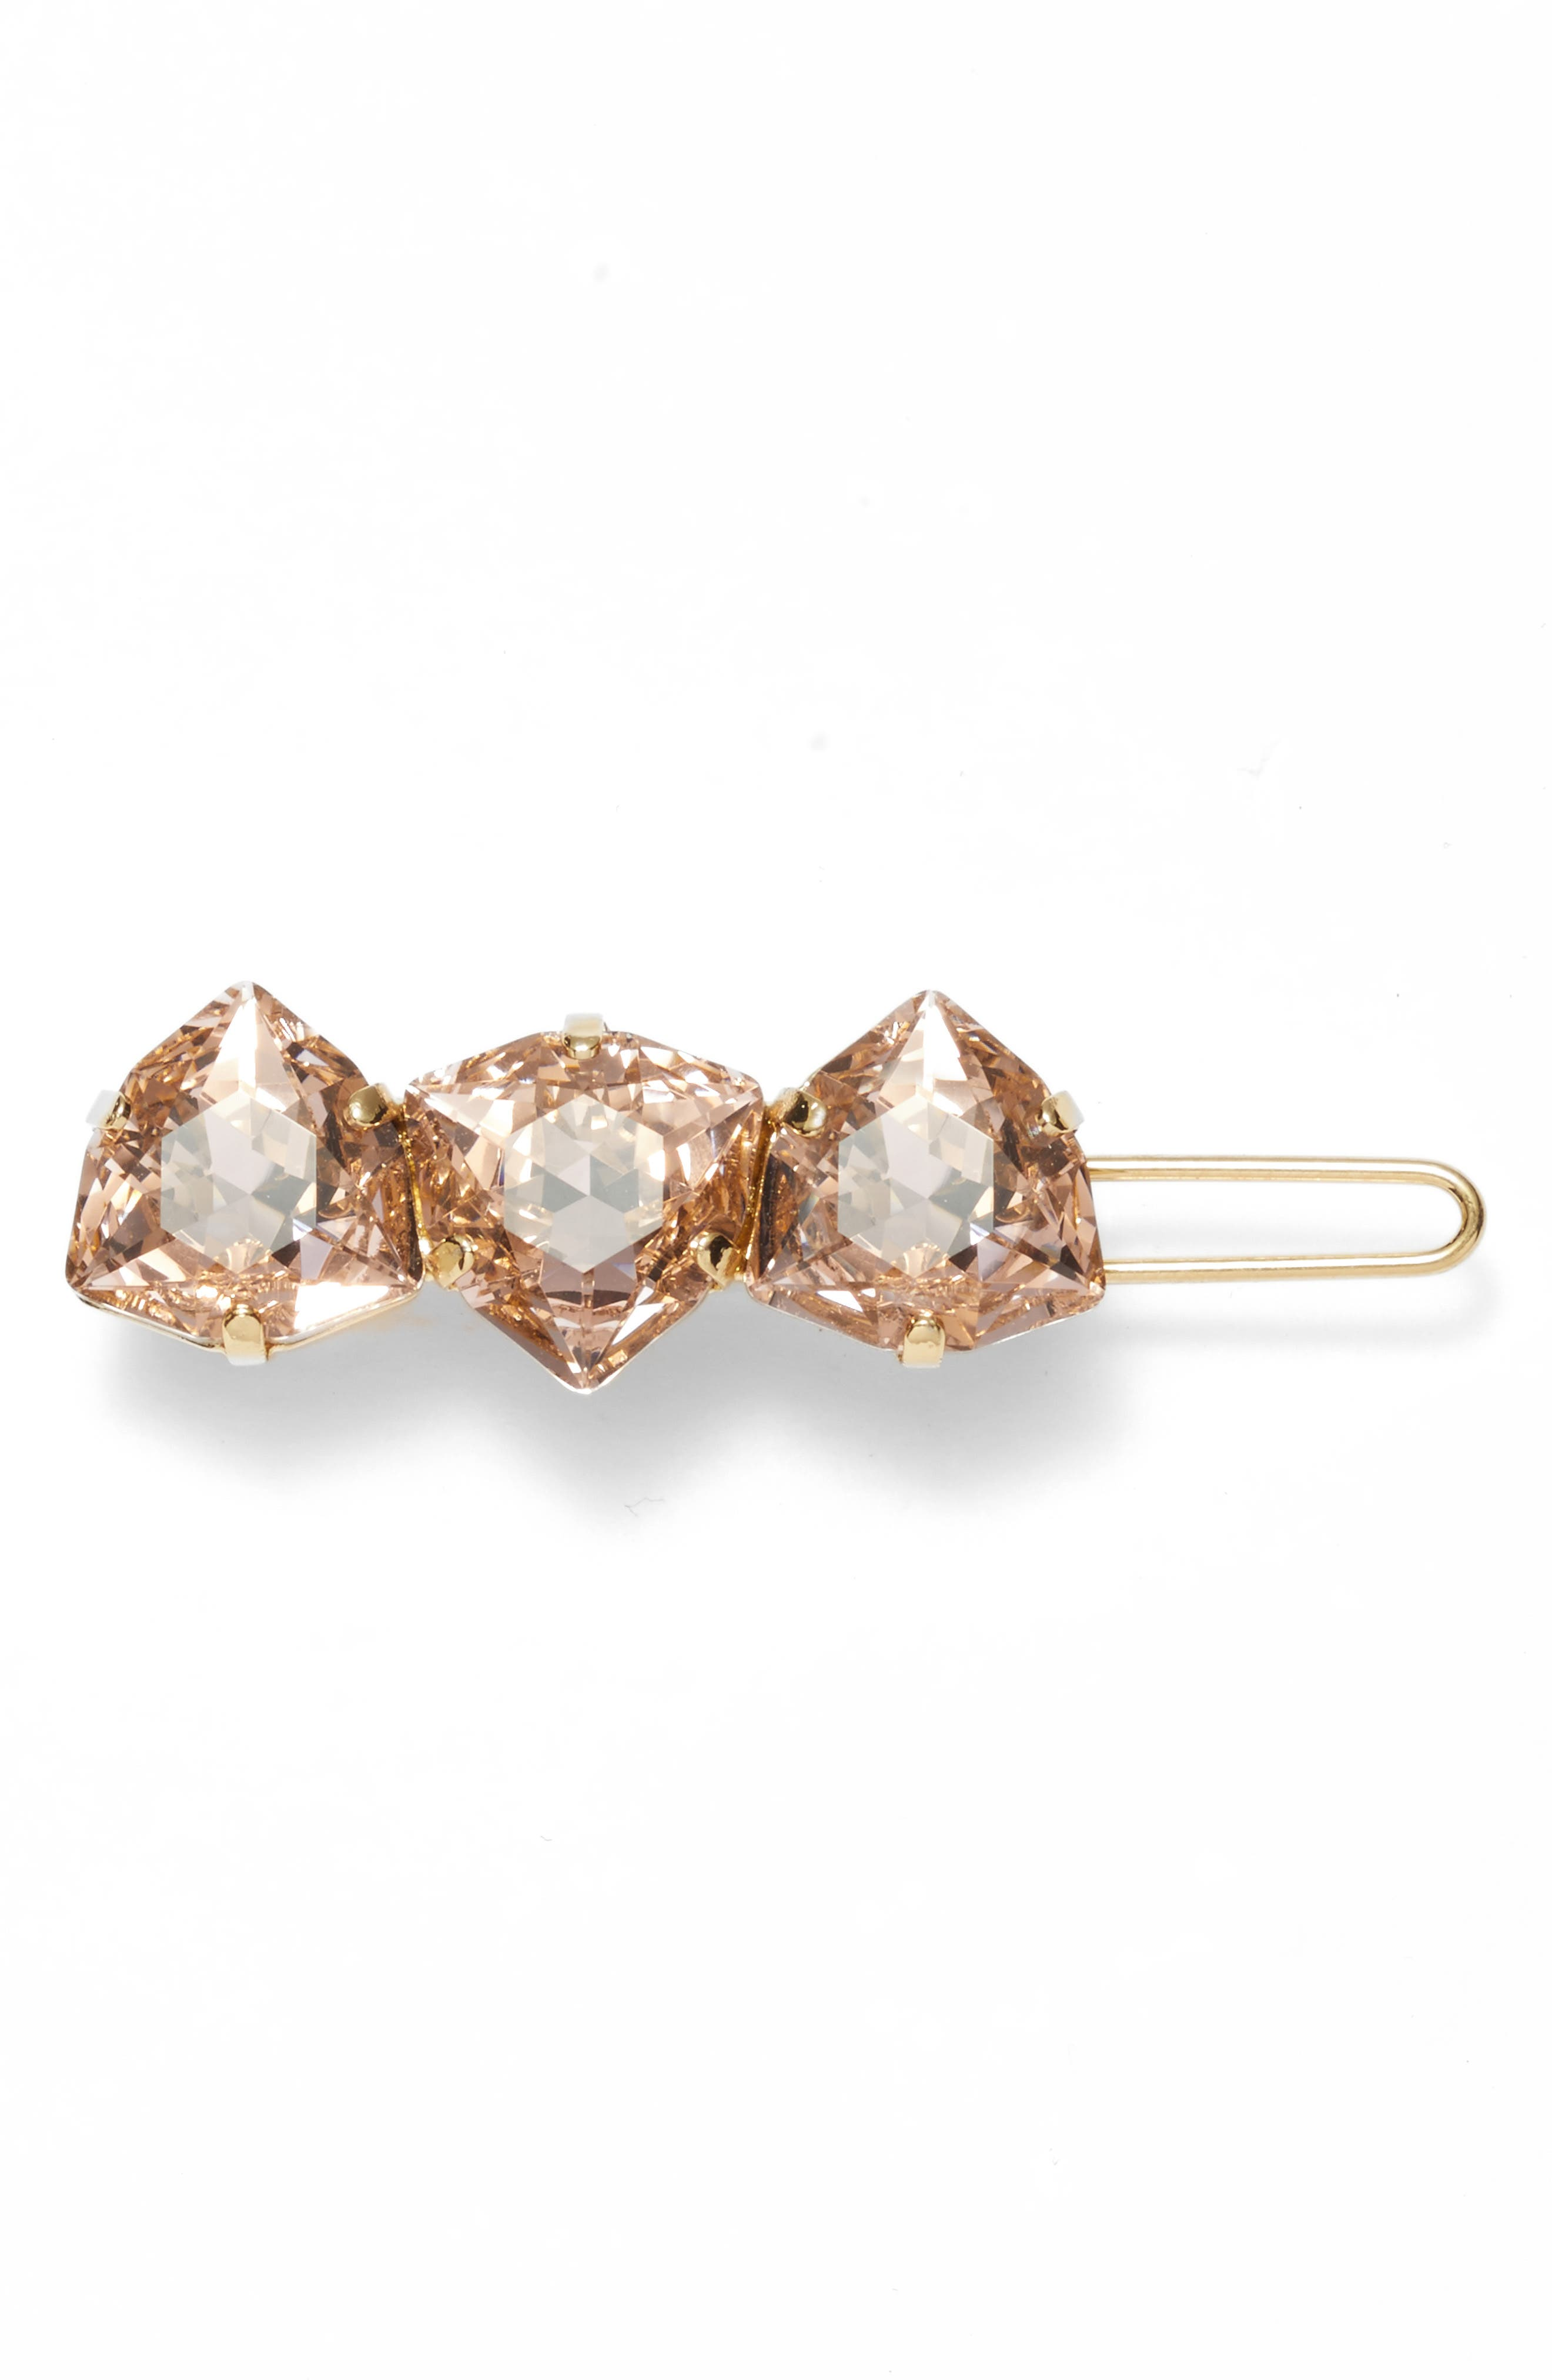 Triple Crystal Tige Boule Barrette,                             Main thumbnail 1, color,                             Vintage Rose/ Gold